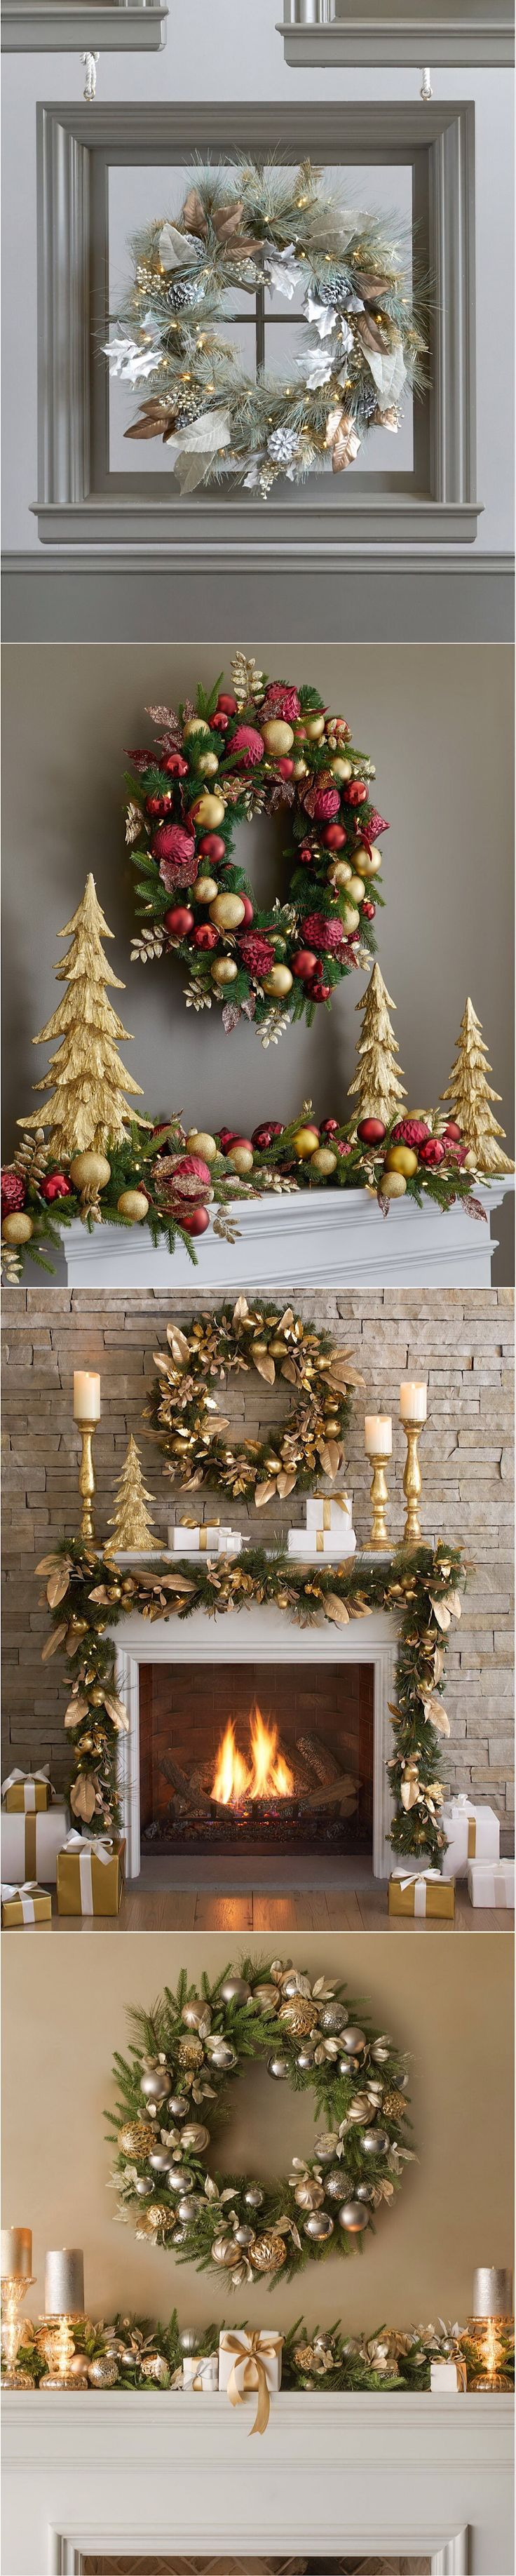 #christmas #ChristmasDecor #ChristmasWreath #balsamhill